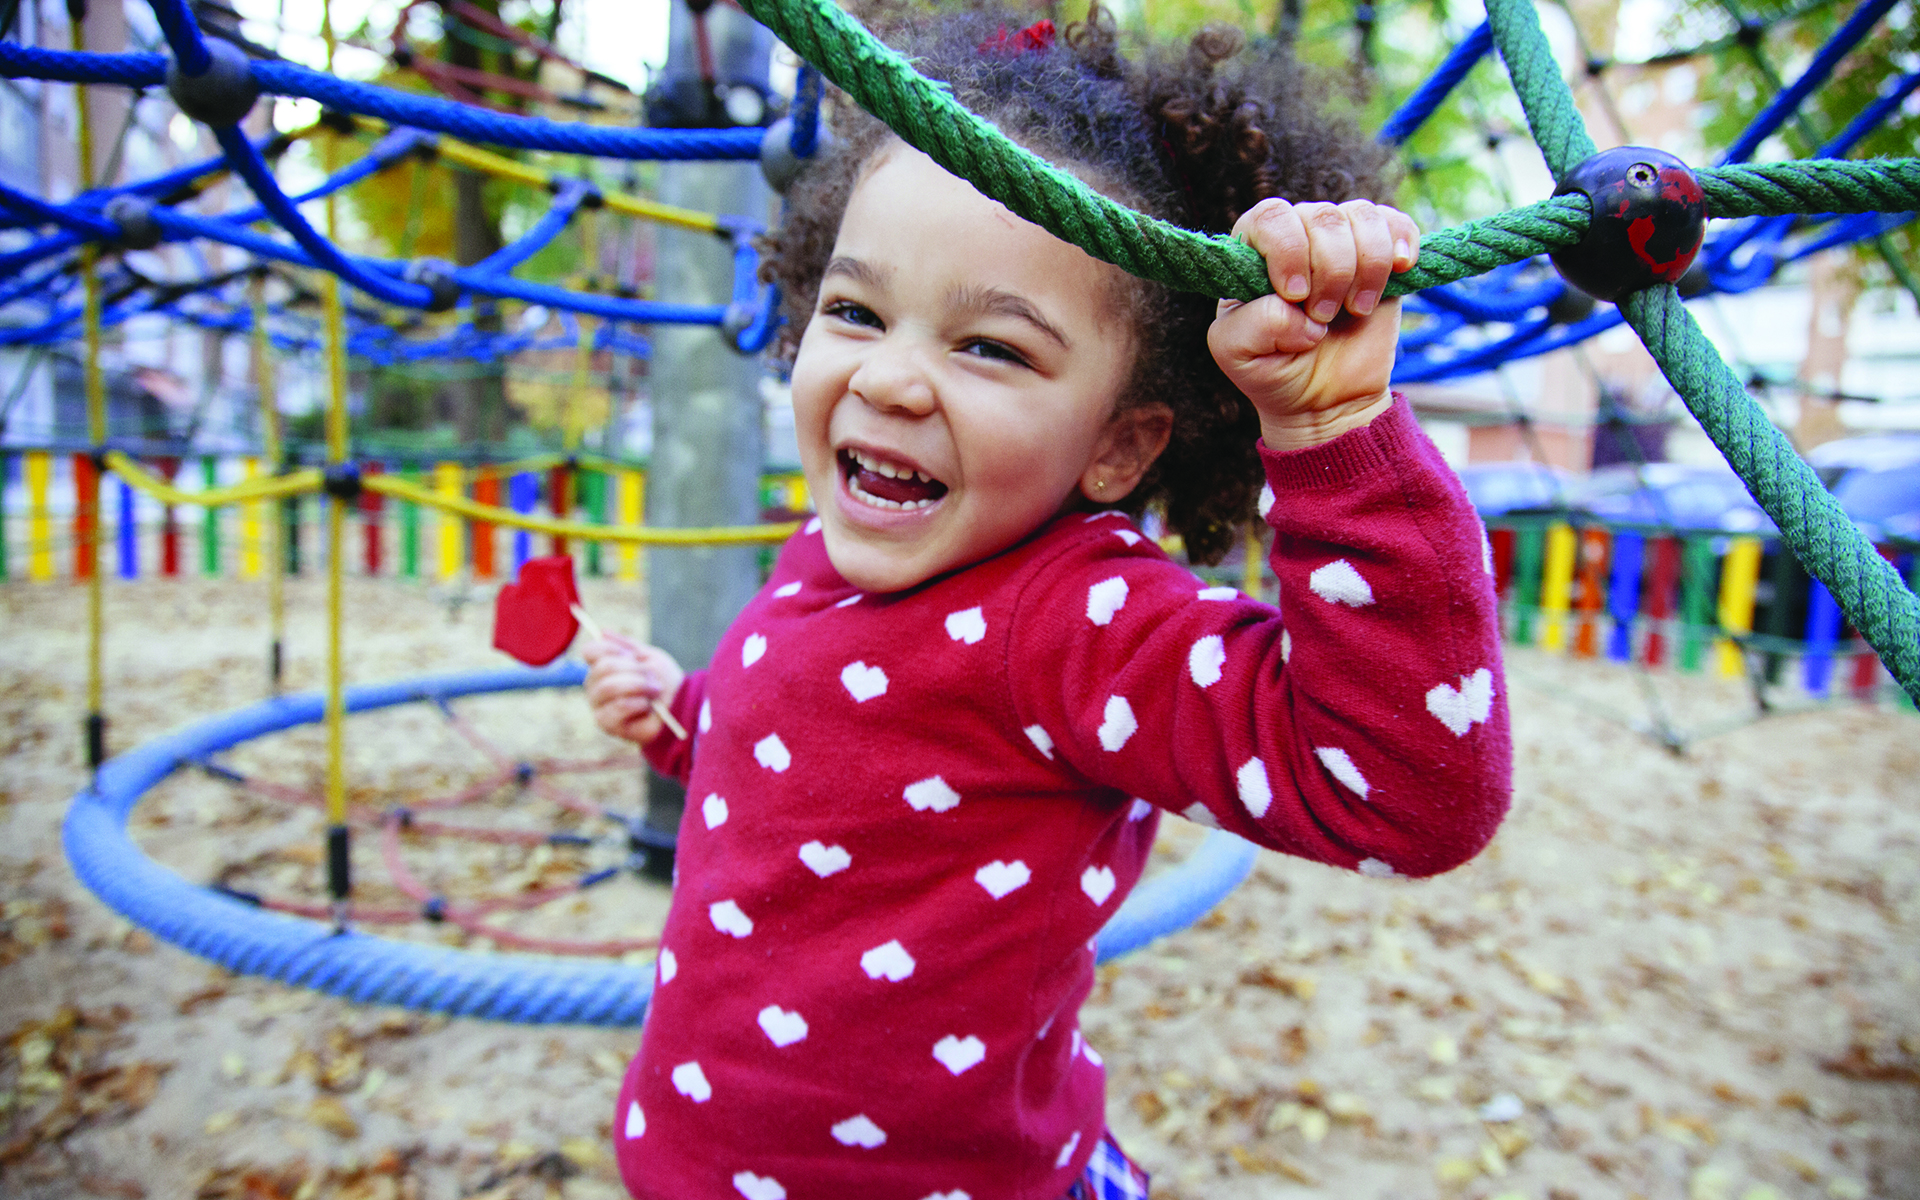 Smiling child wearing red sweater with white polka dots playing on jungle gym in outdoor playground.